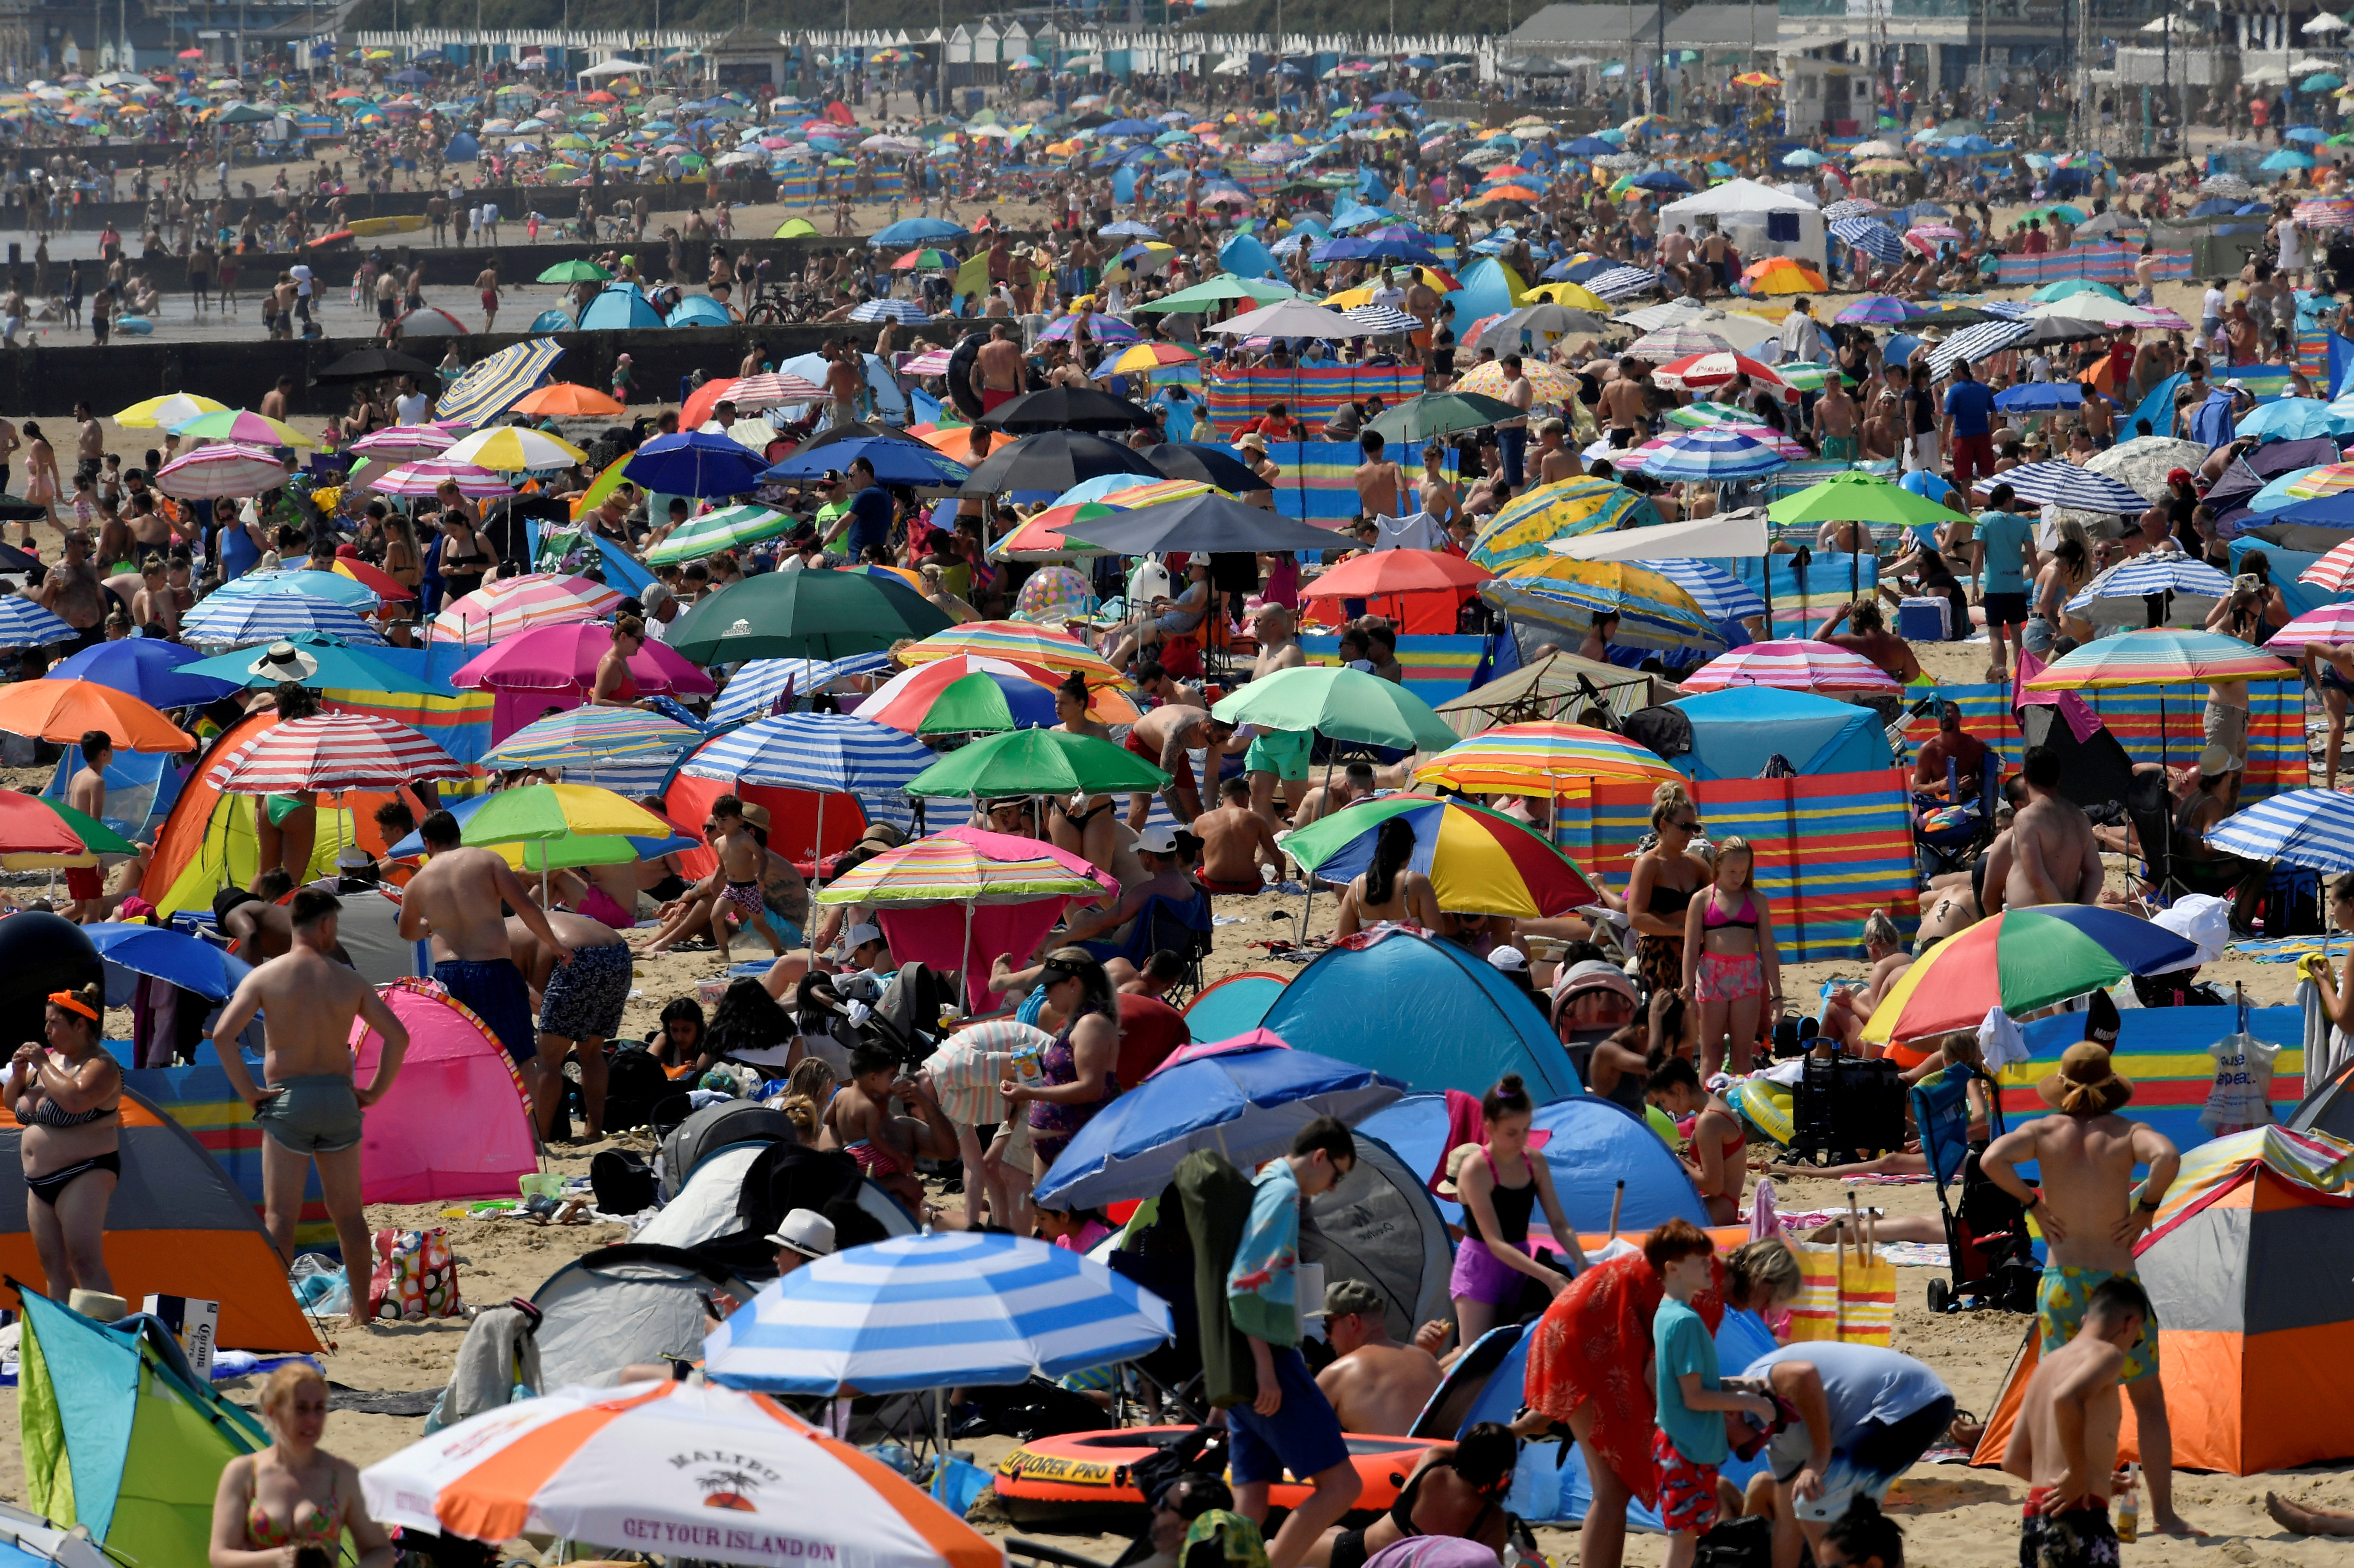 People enjoy the sunny weather at the Bournemouth Beach, amid the coronavirus disease (COVID-19) outbreak, in Bournemouth, Britain July 31, 2020. REUTERS/Toby Melville/File Photo